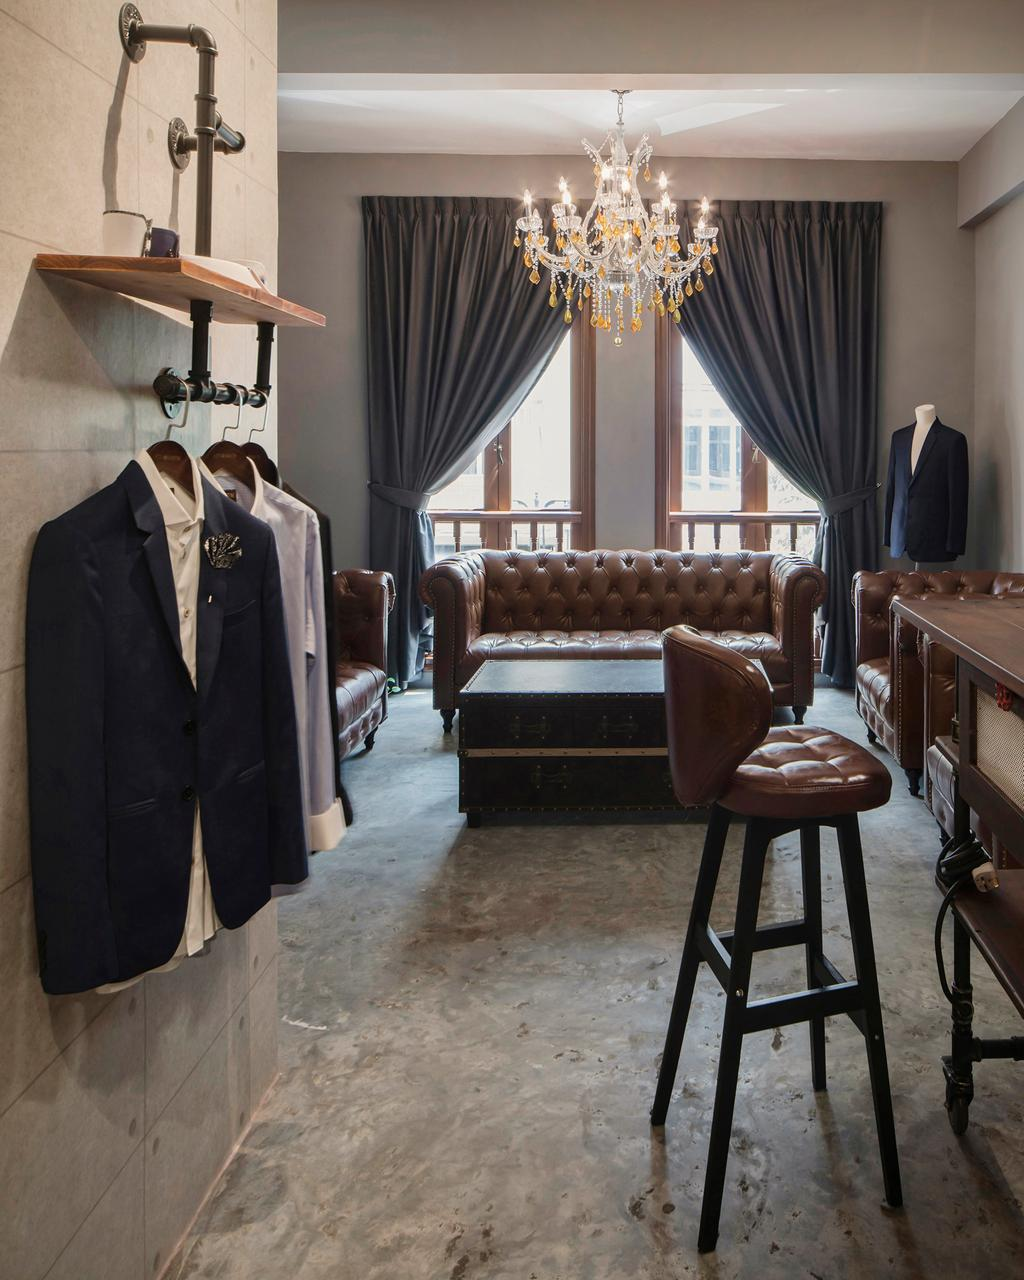 66 Circular Road, Commercial, Interior Designer, Cozy Ideas Interior Design, Industrial, Vintage, Chair, Furniture, Couch, Human, People, Person, Luggage, Suitcase, Indoors, Reception, Reception Room, Room, Waiting Room, Clothing, Coat, Overcoat, Suit